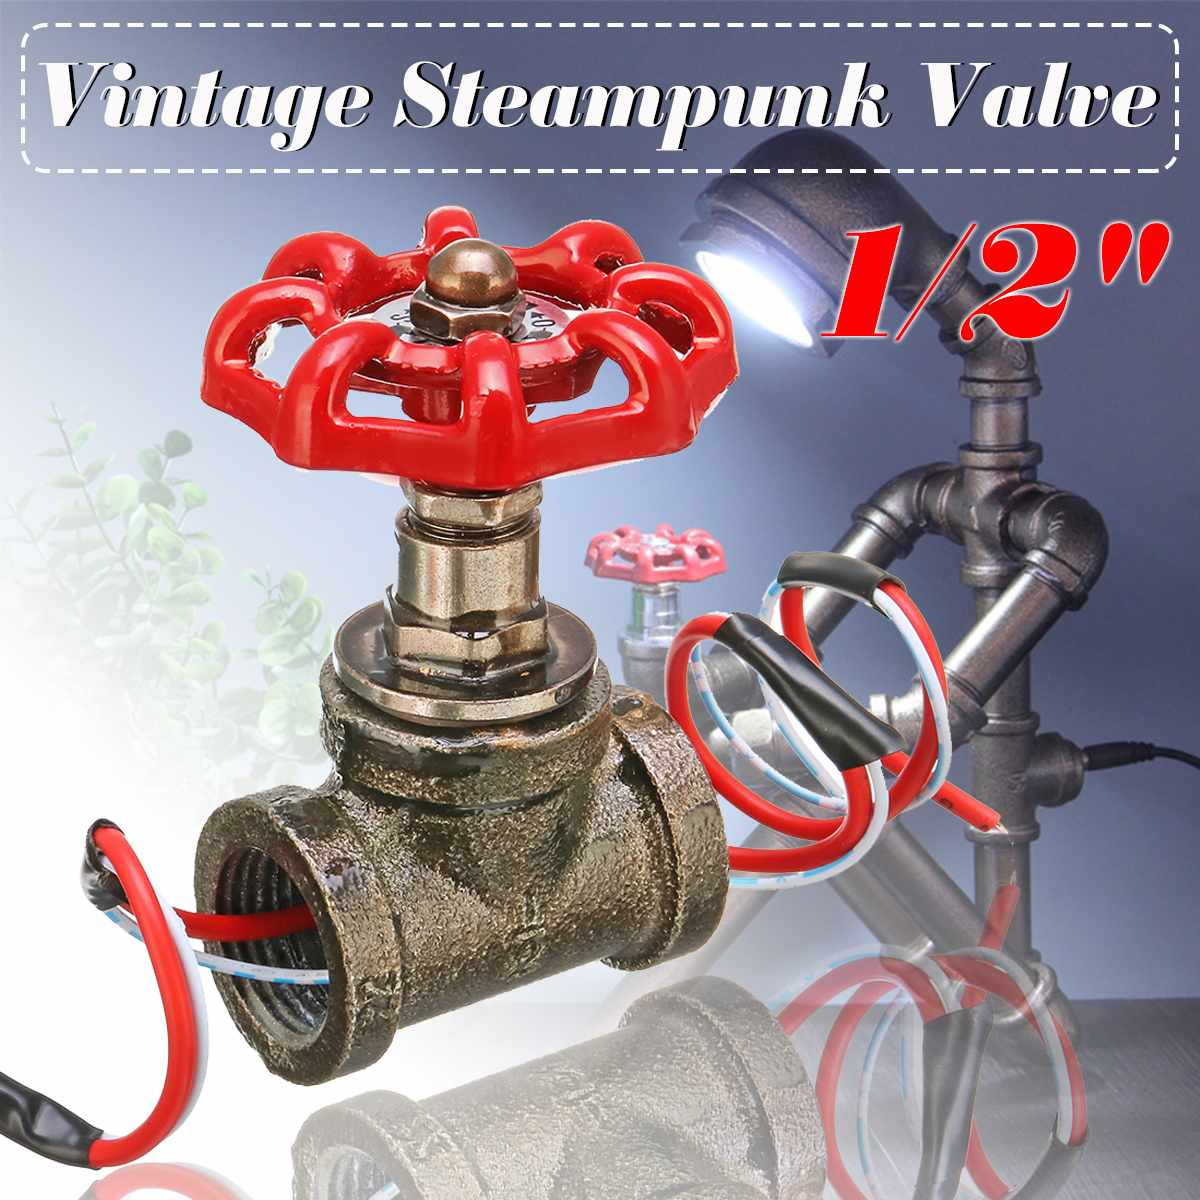 1/2 Inch Stop Valve Light Switch With Wire For Water Pipe Lamps Vintage  Lamp Loft Style Iron Valve Vintage Table Lamp